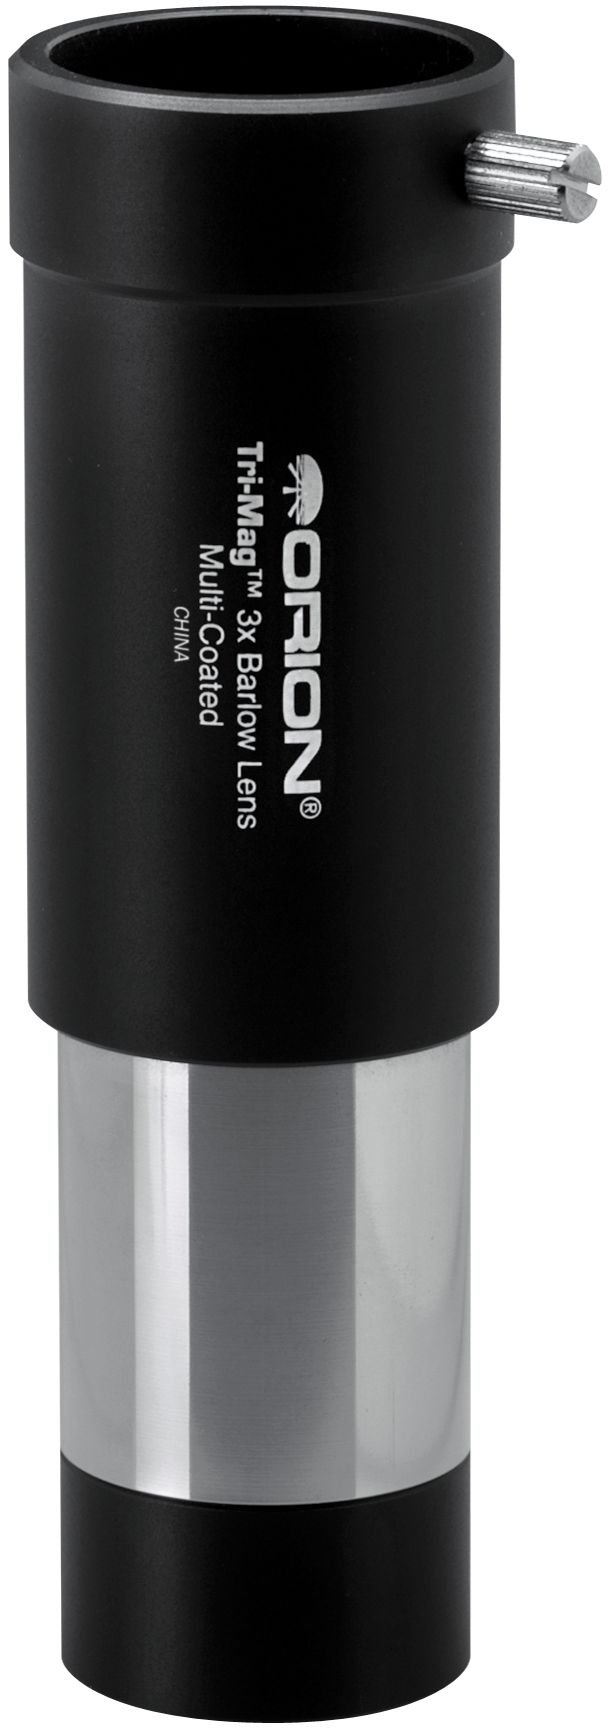 Orion 08704 Tri-Mag 1.25-Inch 3x Barlow Lens (Black) by Orion